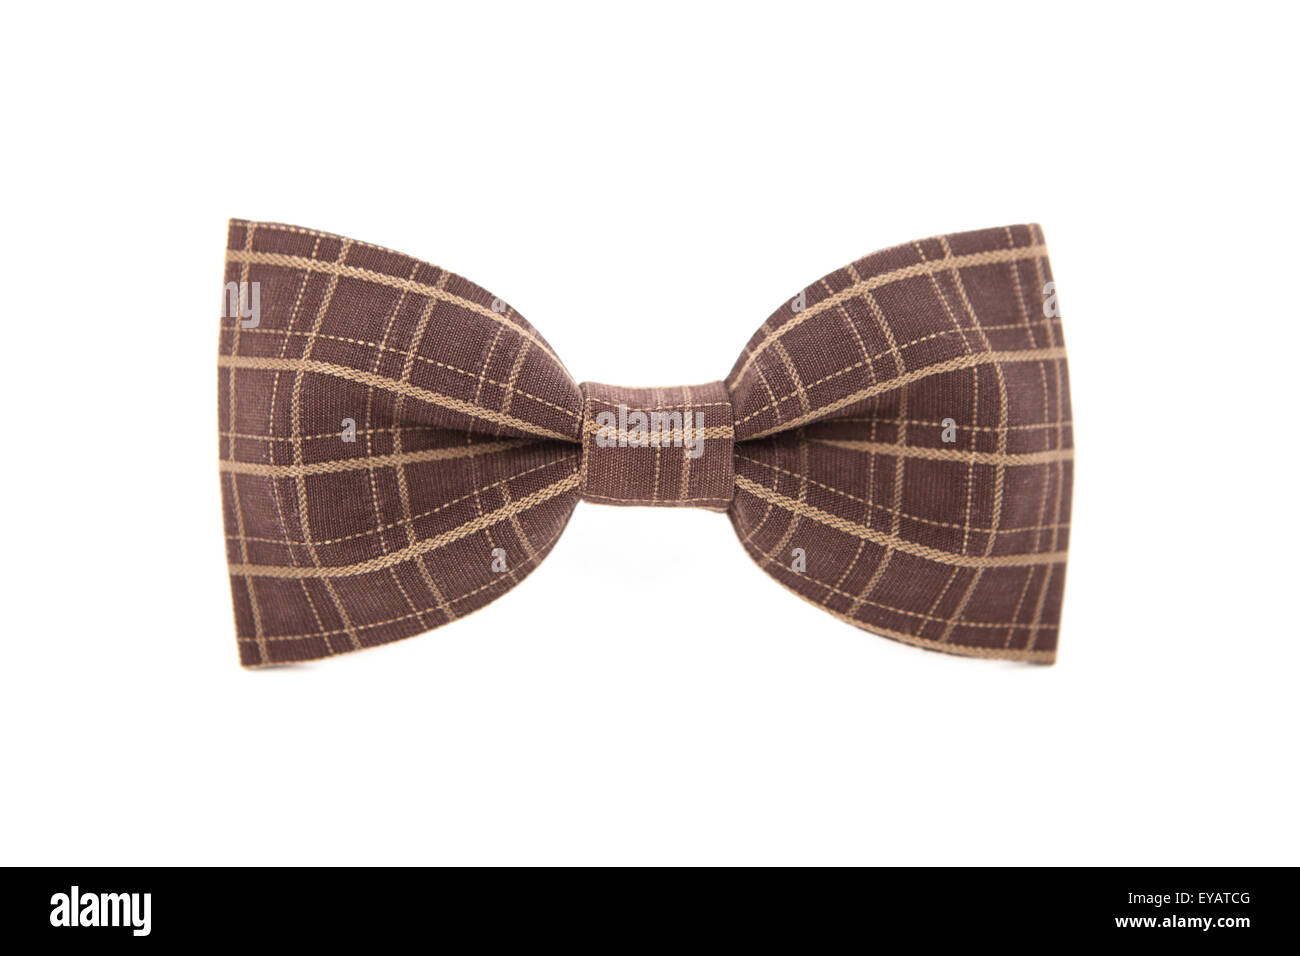 Brown striped men's bow tie isolated on white background. - Stock Image